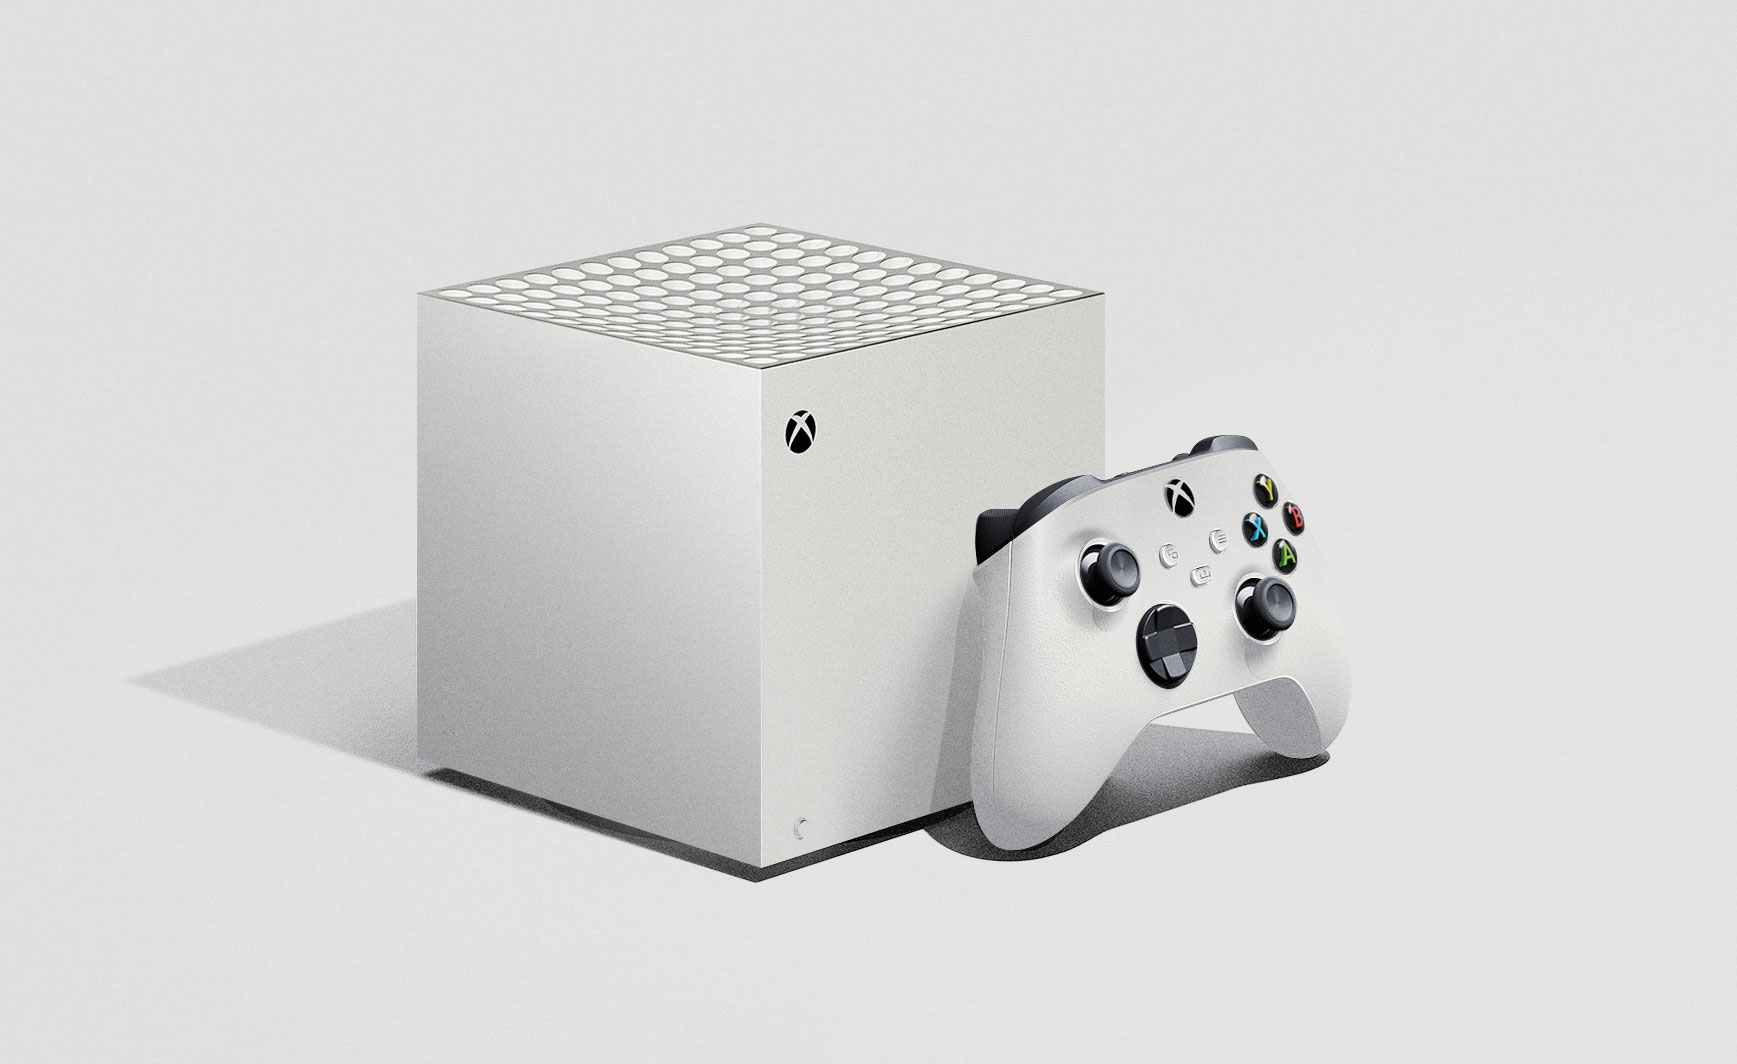 The Xbox Series X's digital-only sibling is real - and here's the proof | T3